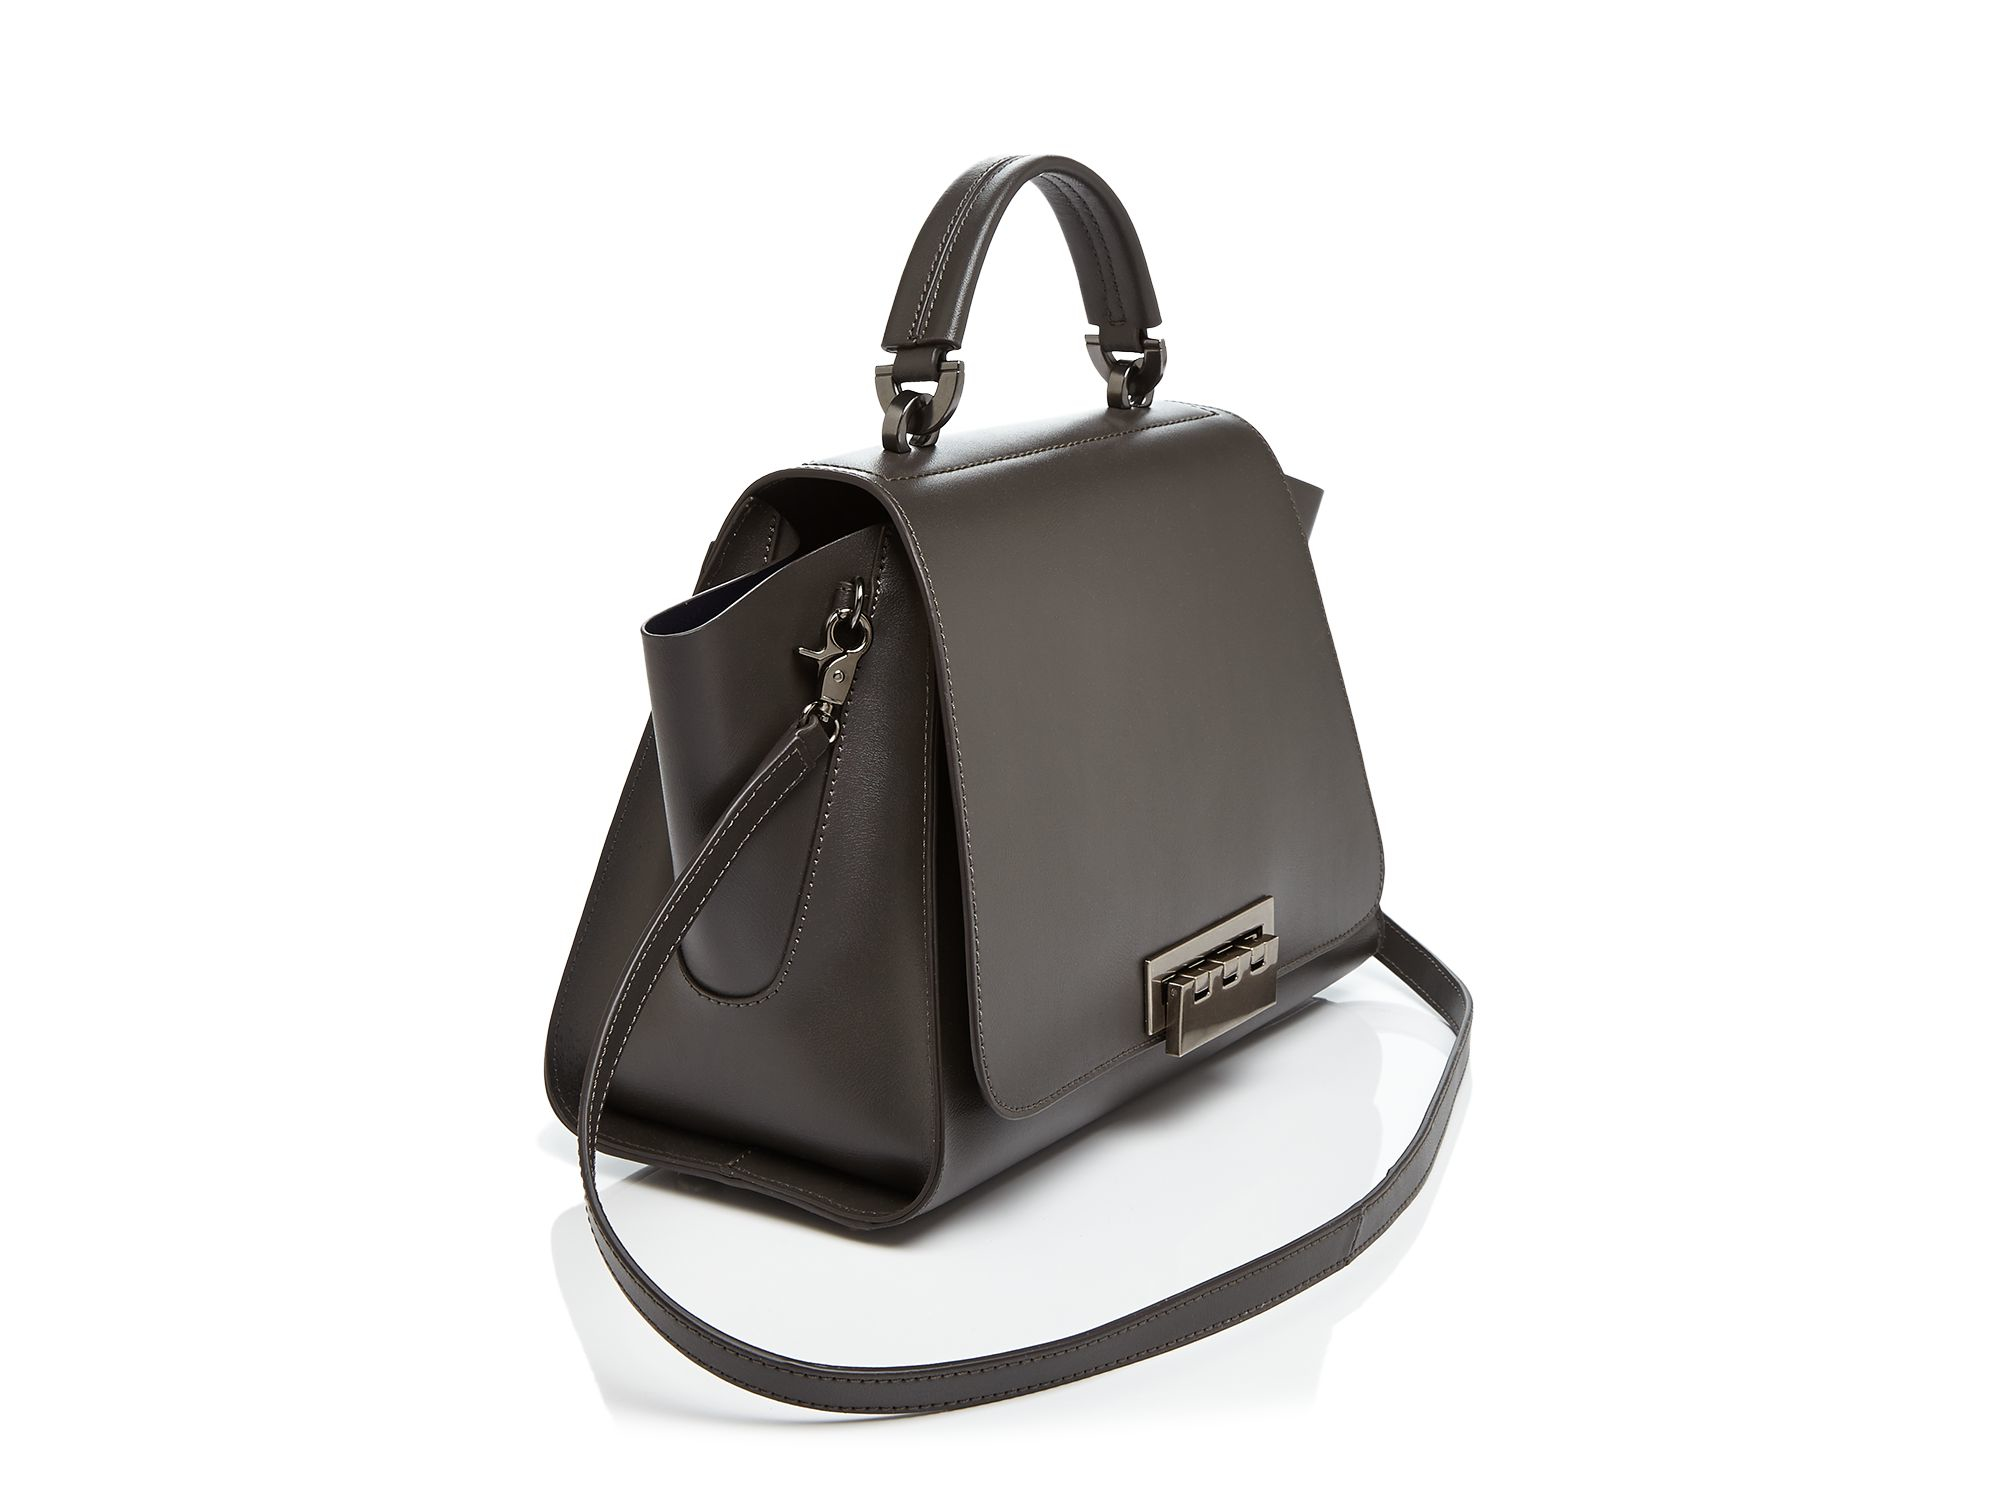 Zac Zac Posen Eartha Iconic Soft Top Handle Satchel In